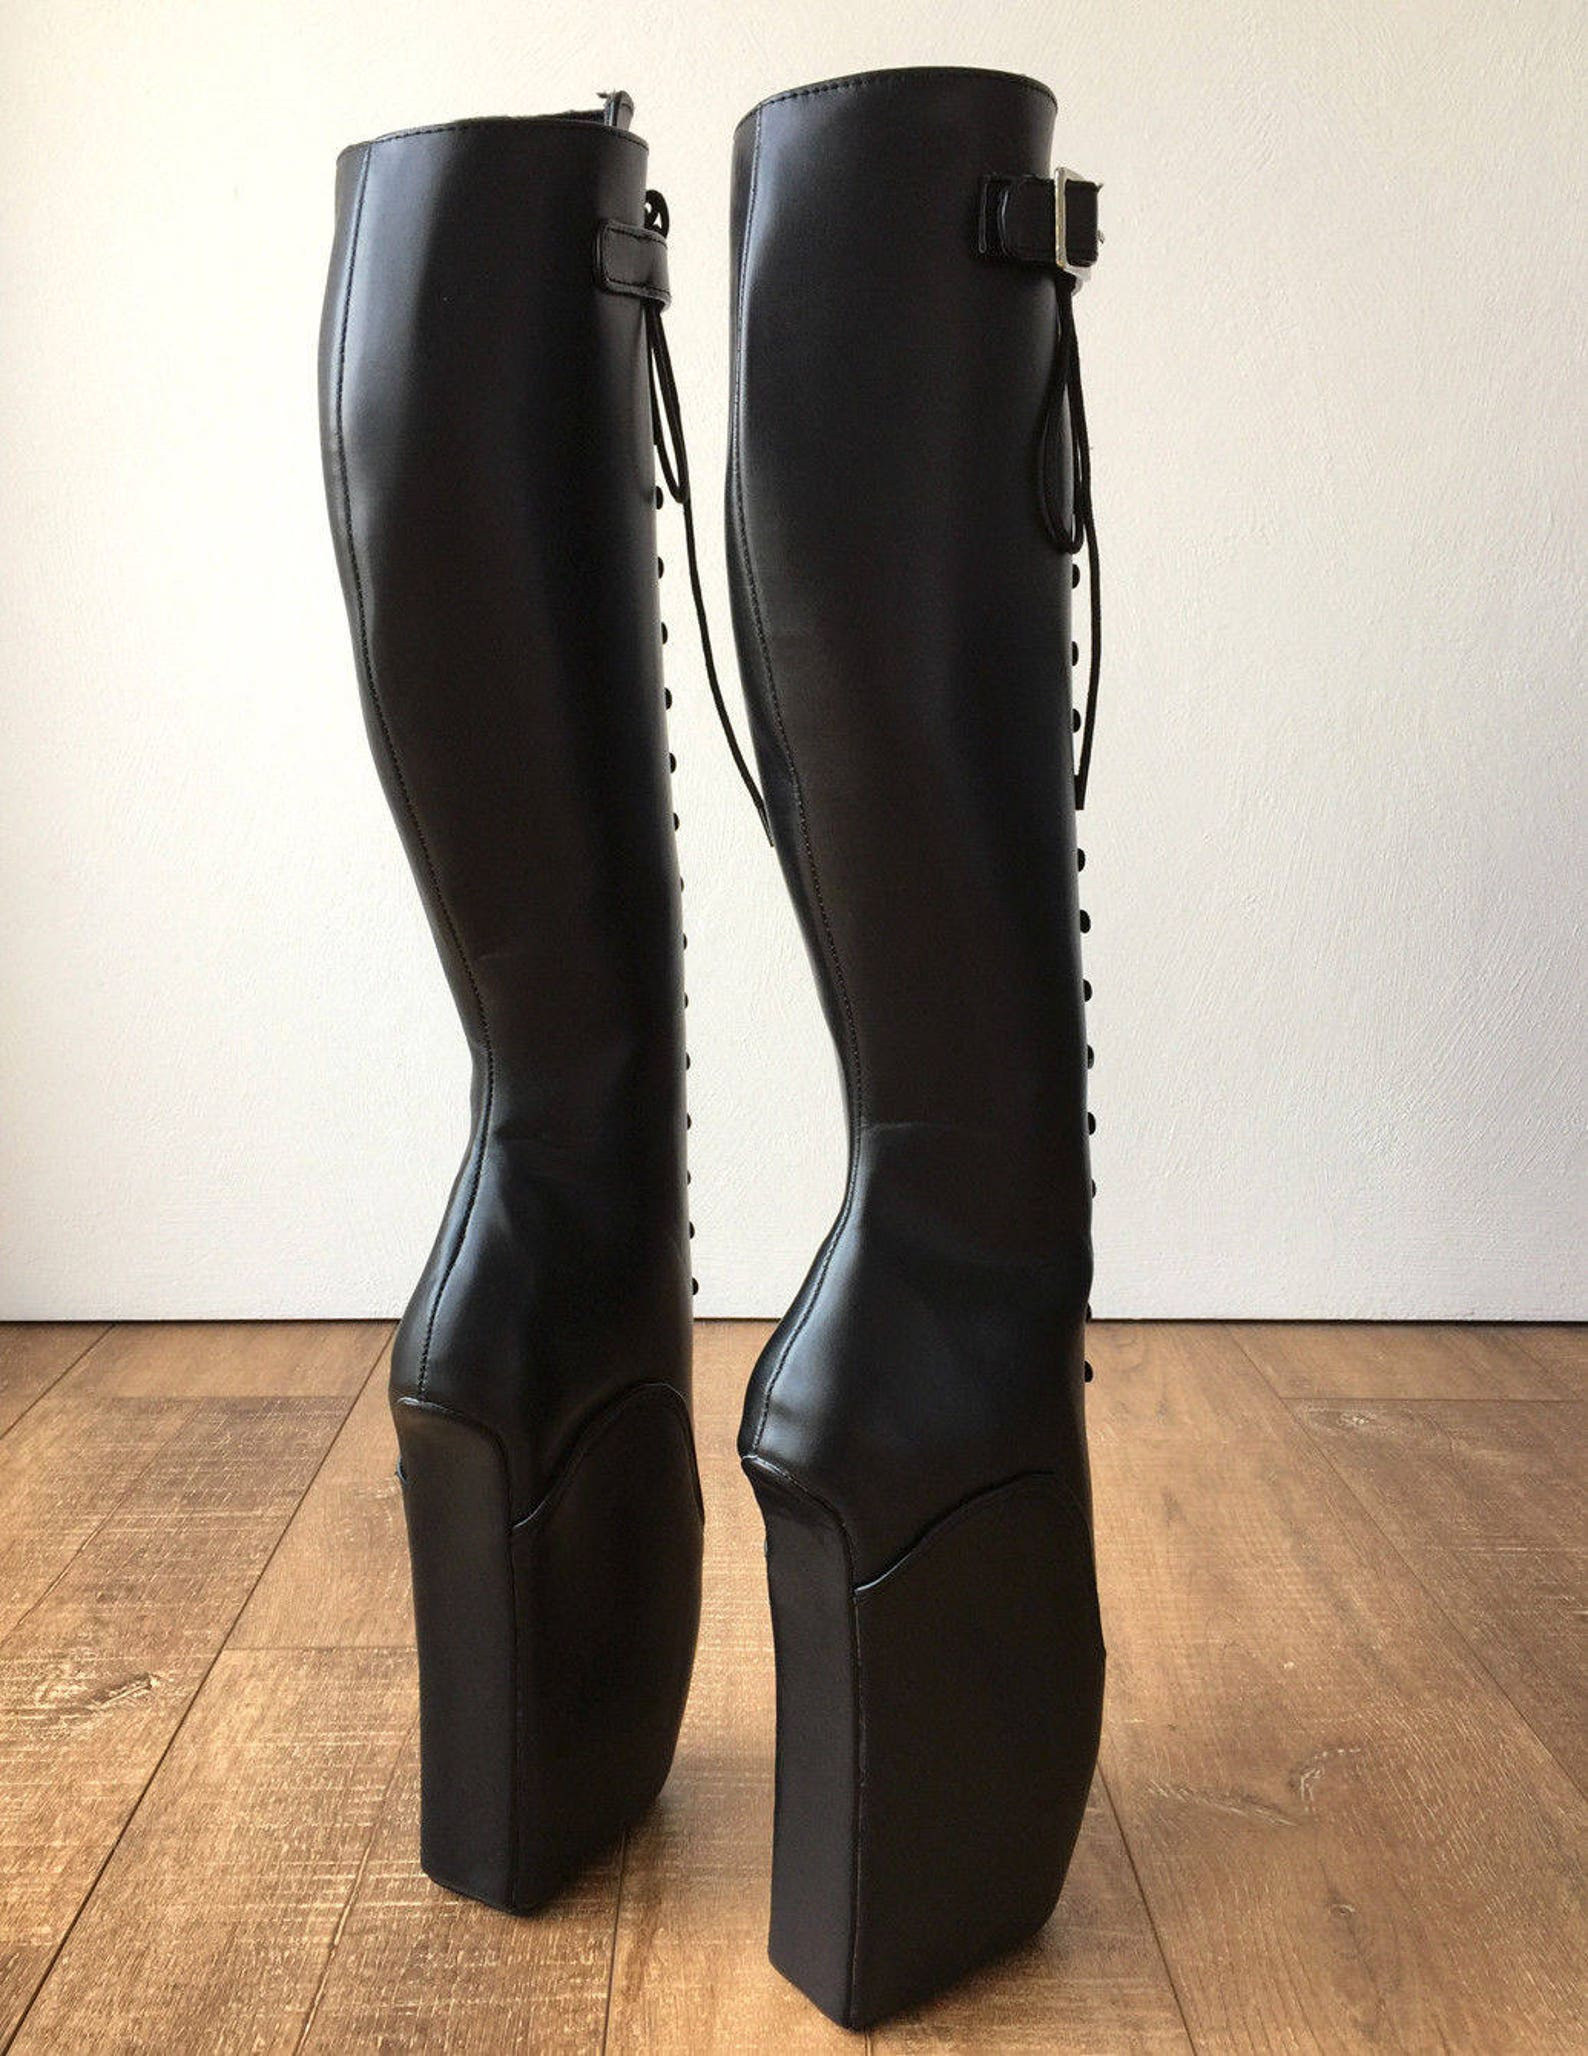 rtbu jason ballet wedge laceup knee hi boots hoof strap fetish dominatrix black